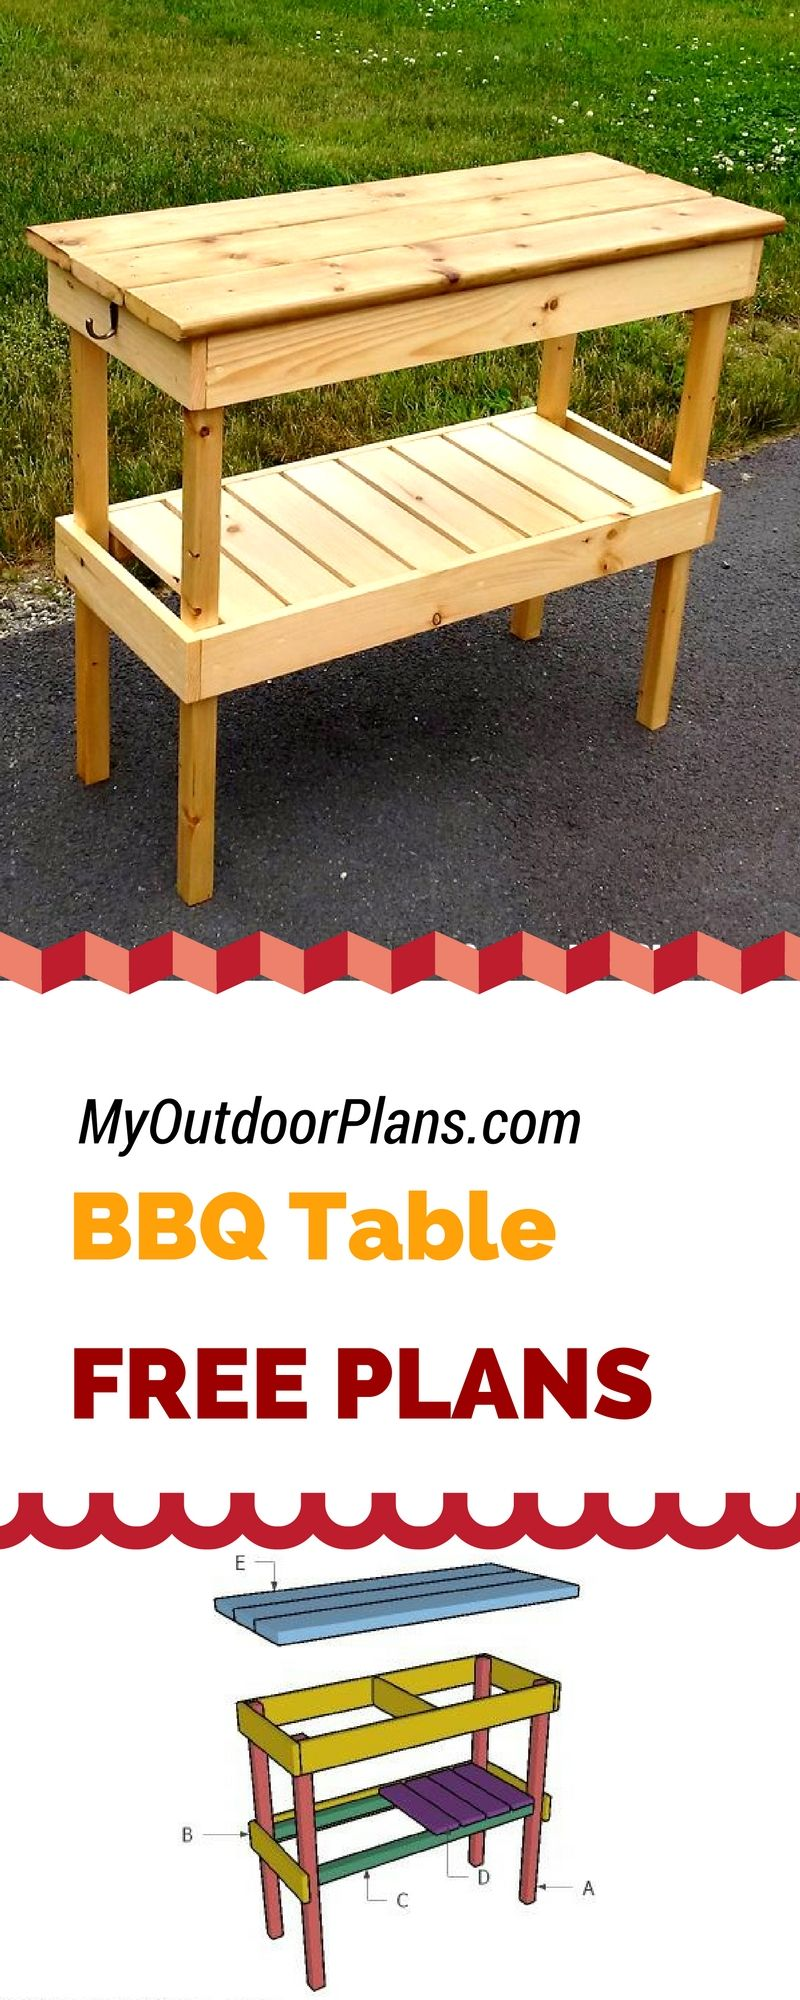 Easy To Follow Plans For You To Build A Bbq Table For You Backyard Detailed Tutorial On How To Build A Bbq Table Bbq Table Backyard Bbq Table Diy Grill Table